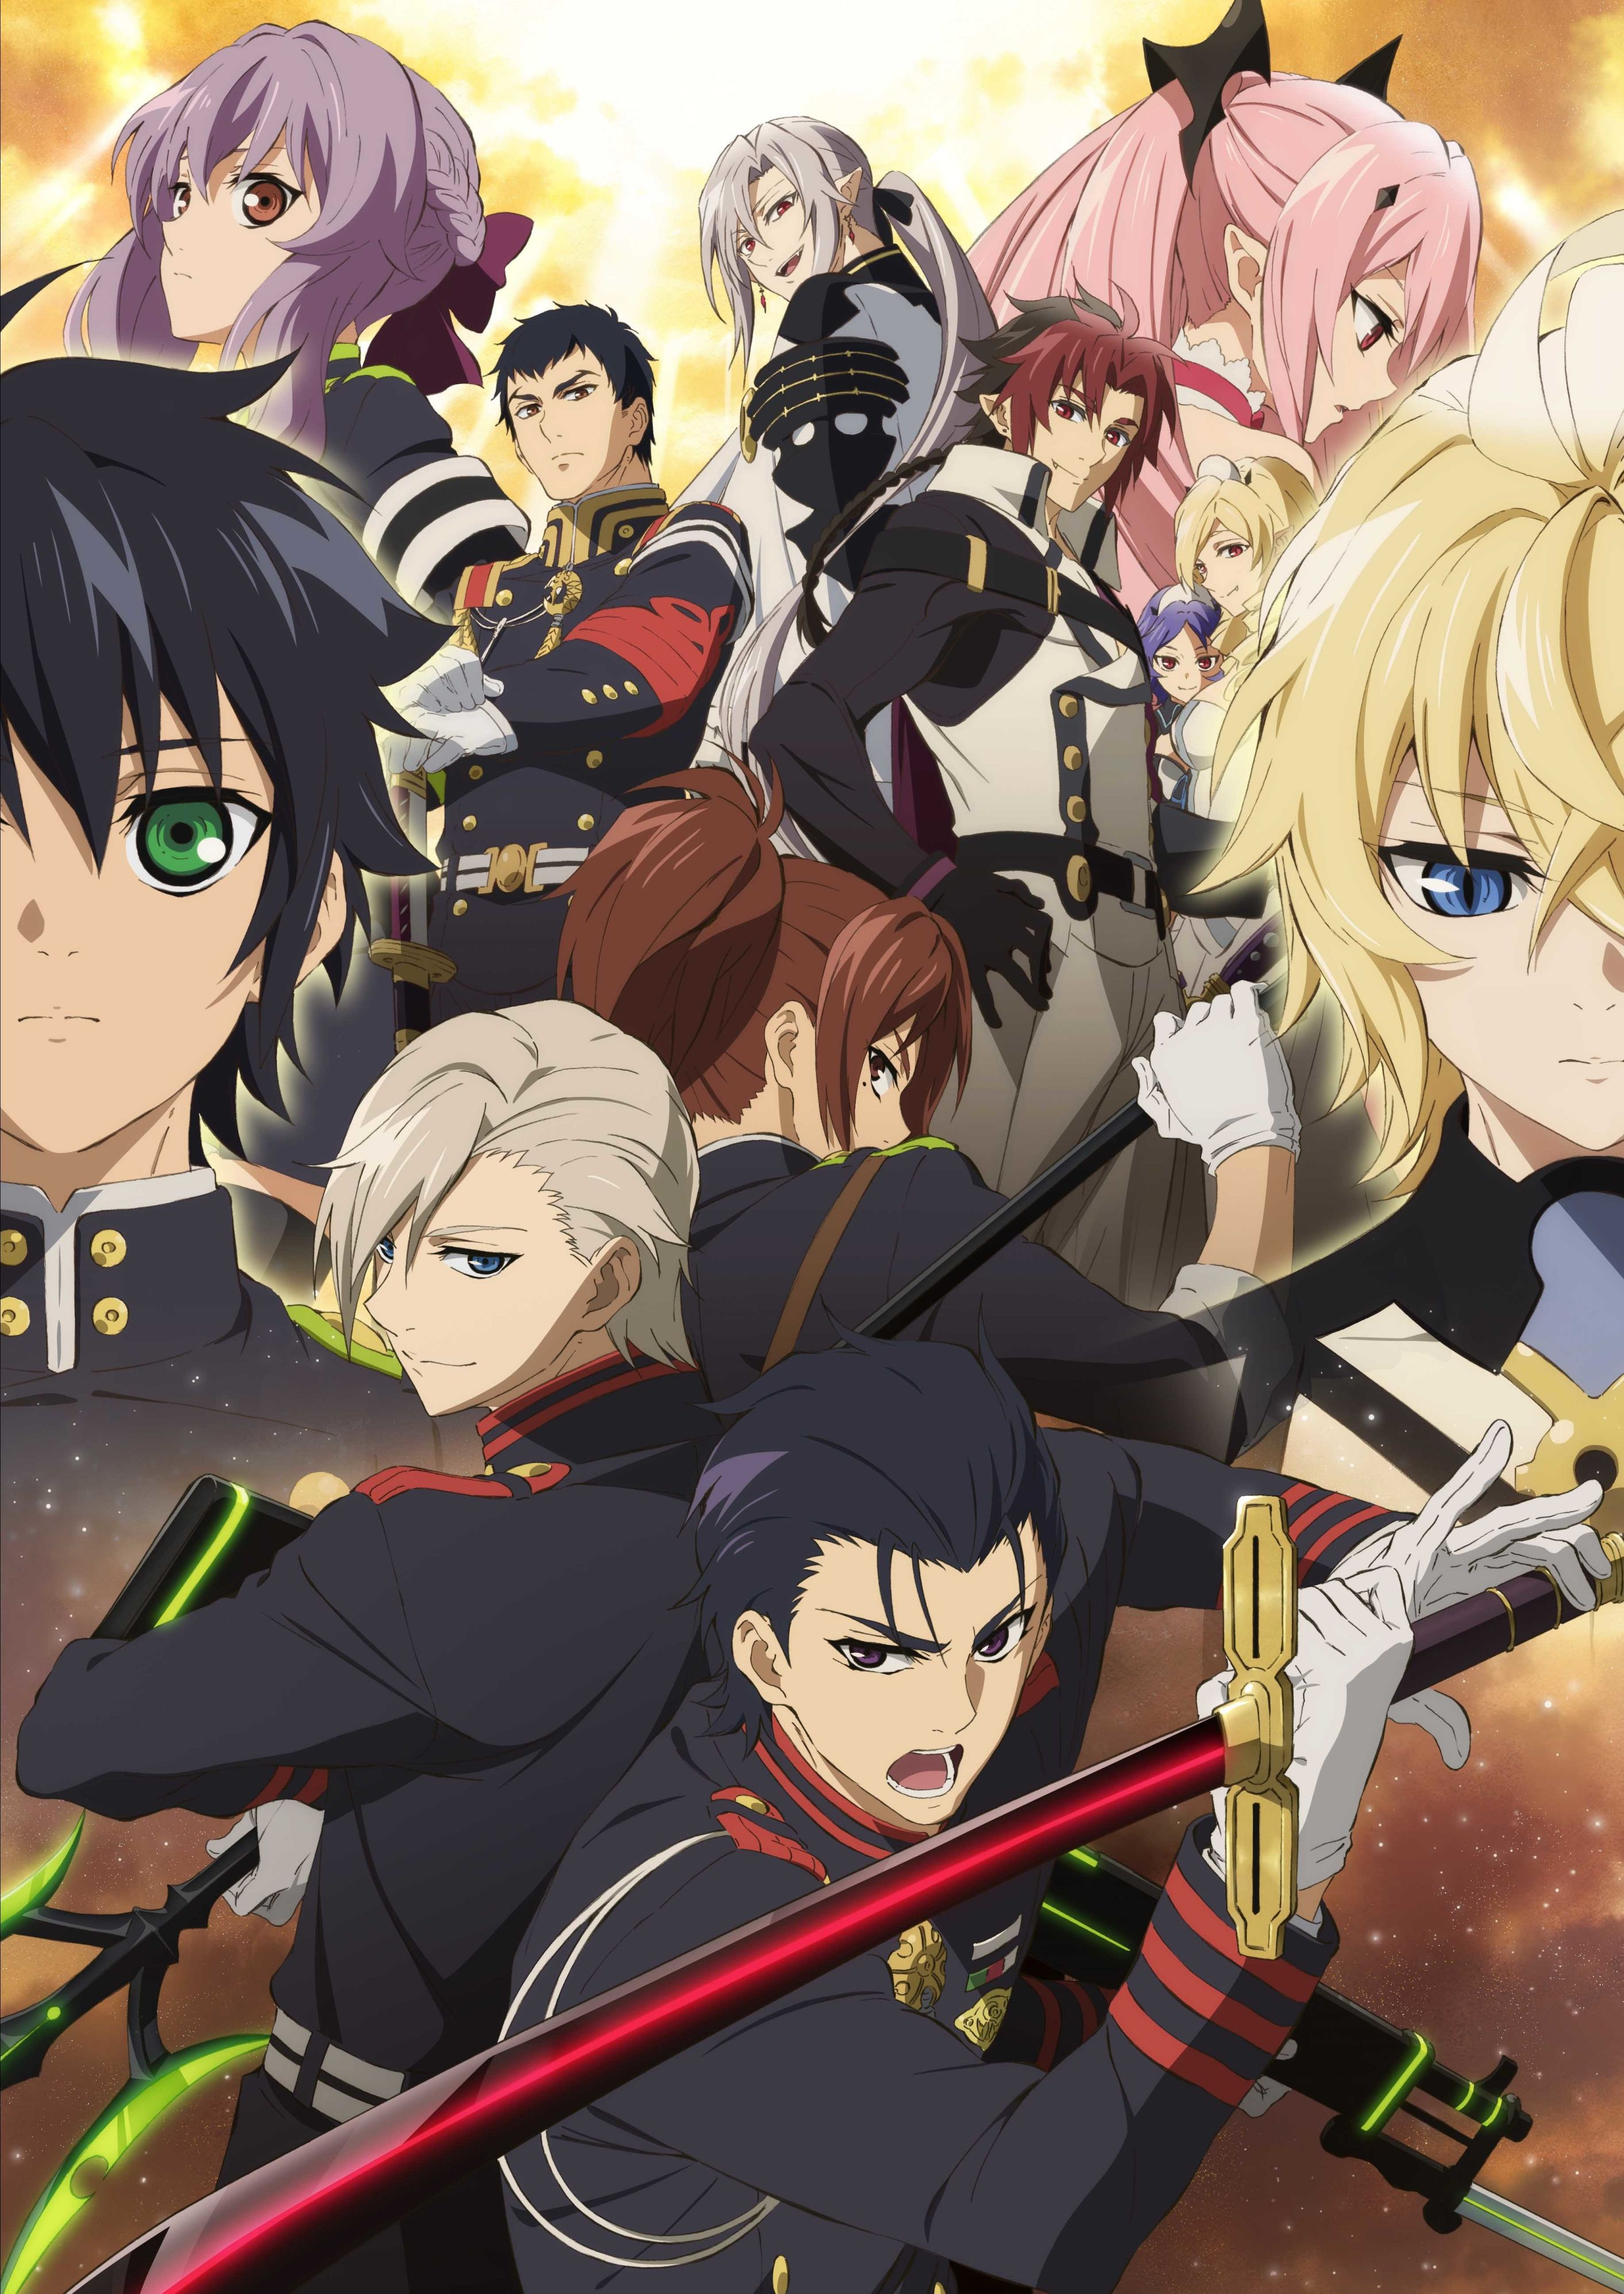 Pin by Jewel on Seraph of the End Fall anime, Seraph of